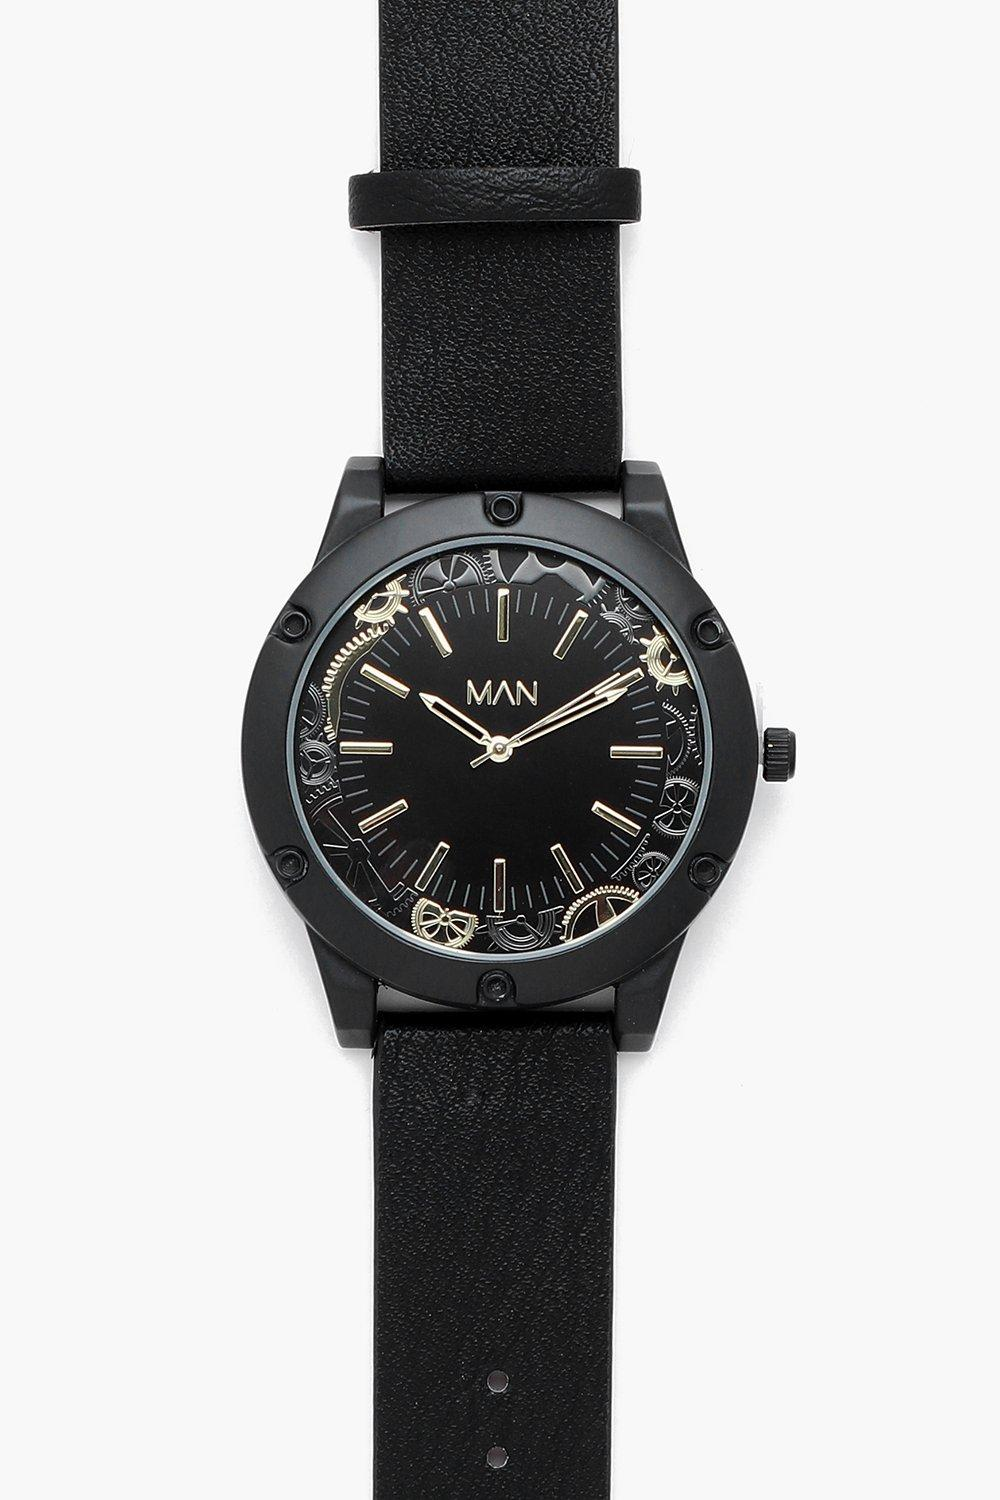 boohooMAN Oversized Cog Detail Black Watch